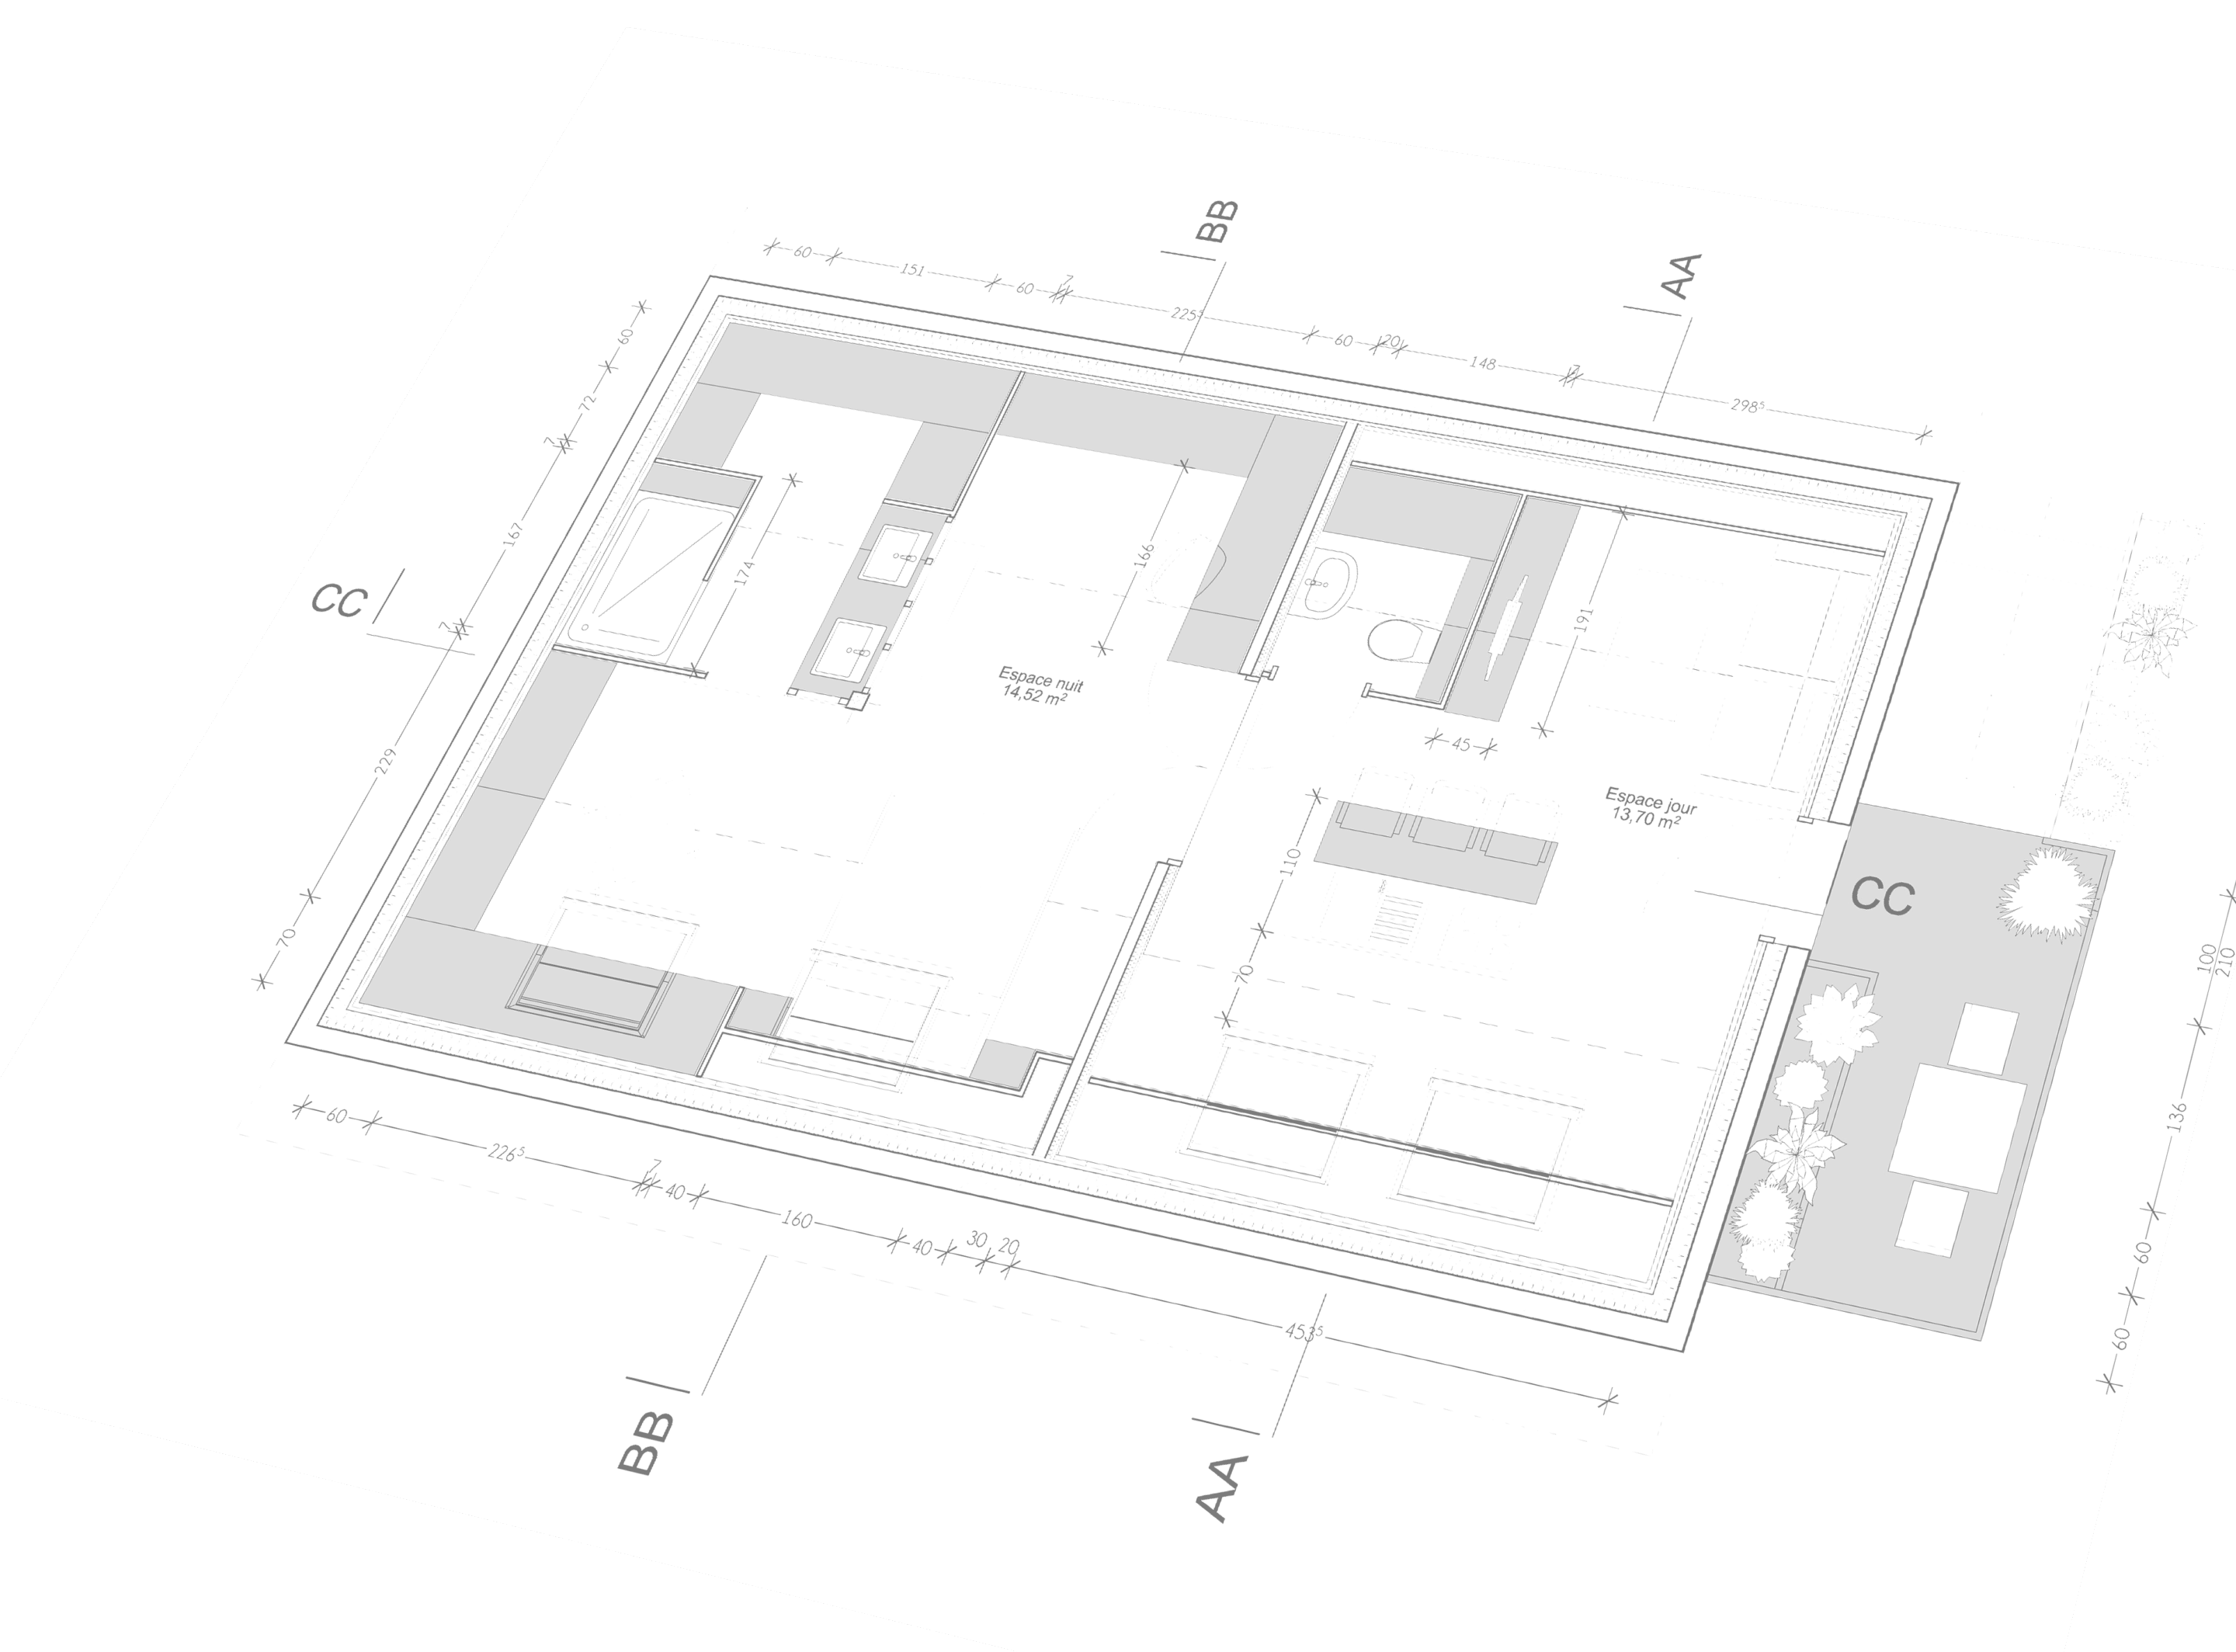 Plan de maison version dessin